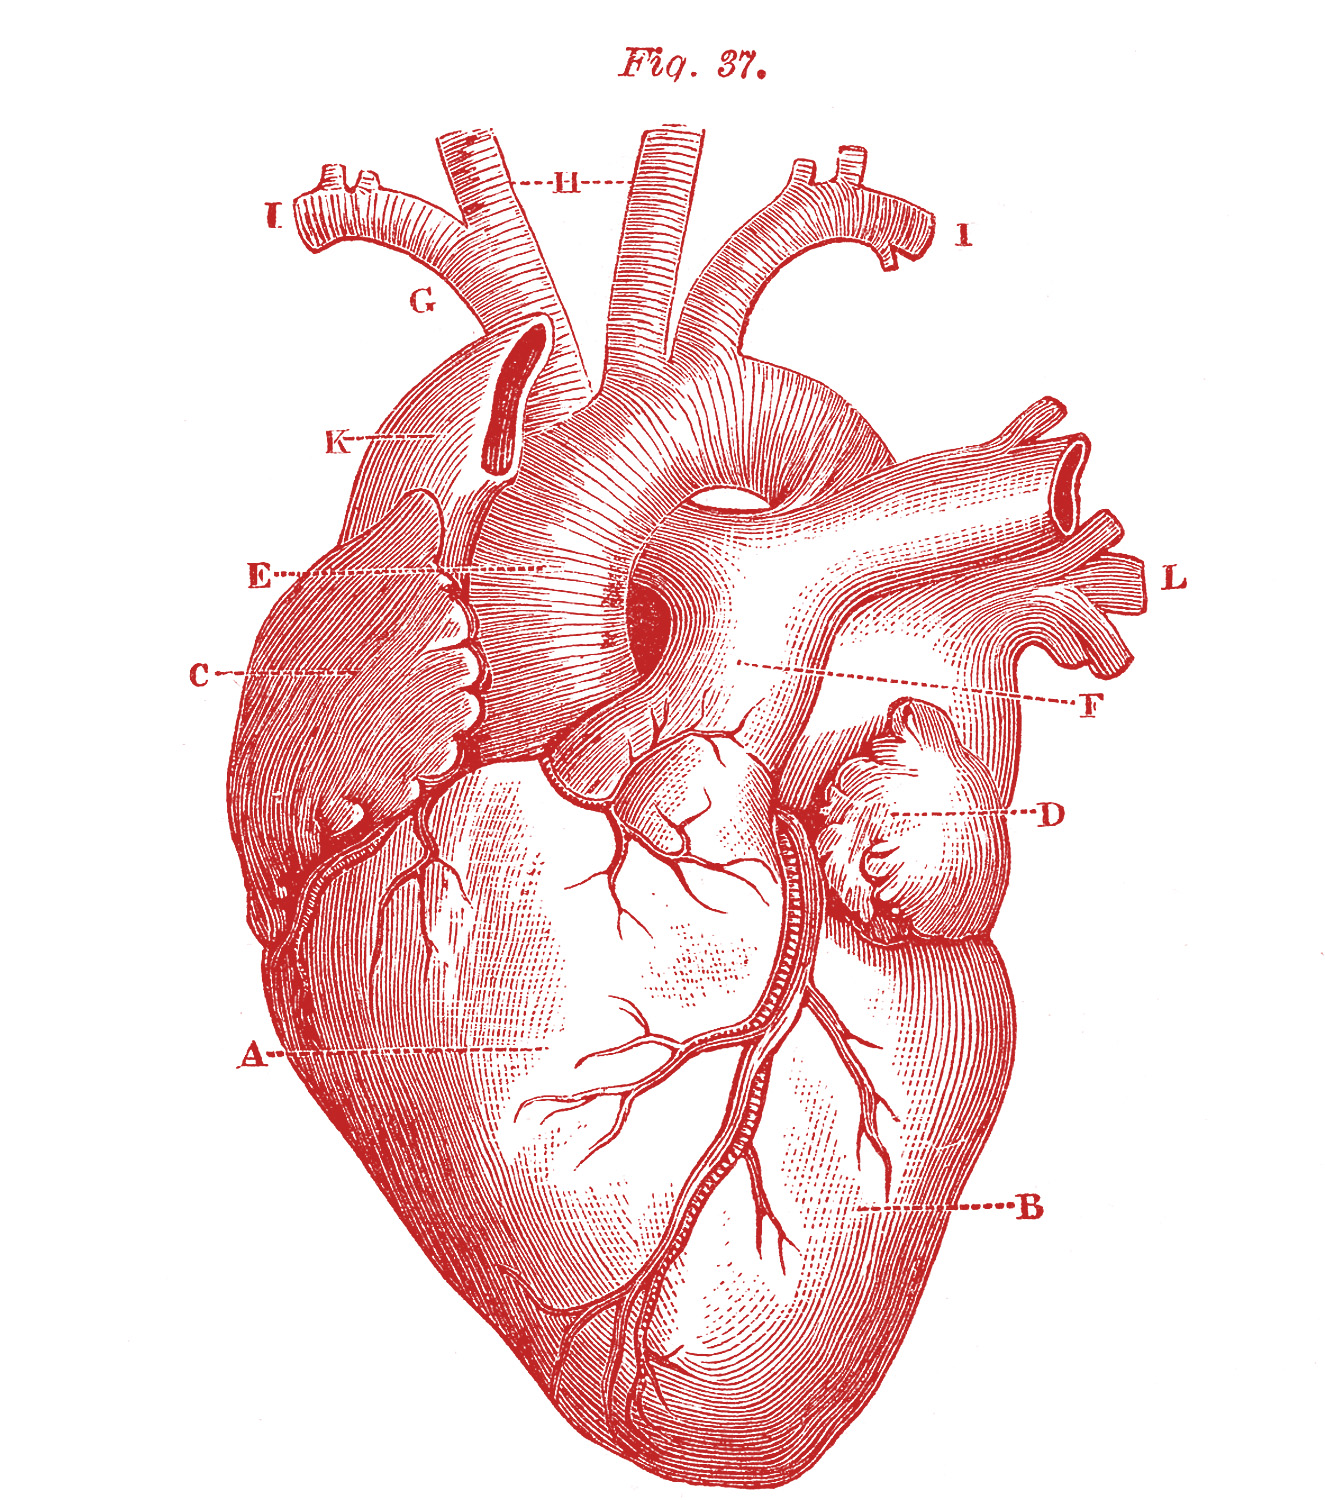 Red Vintage Anatomical Heart Illustration